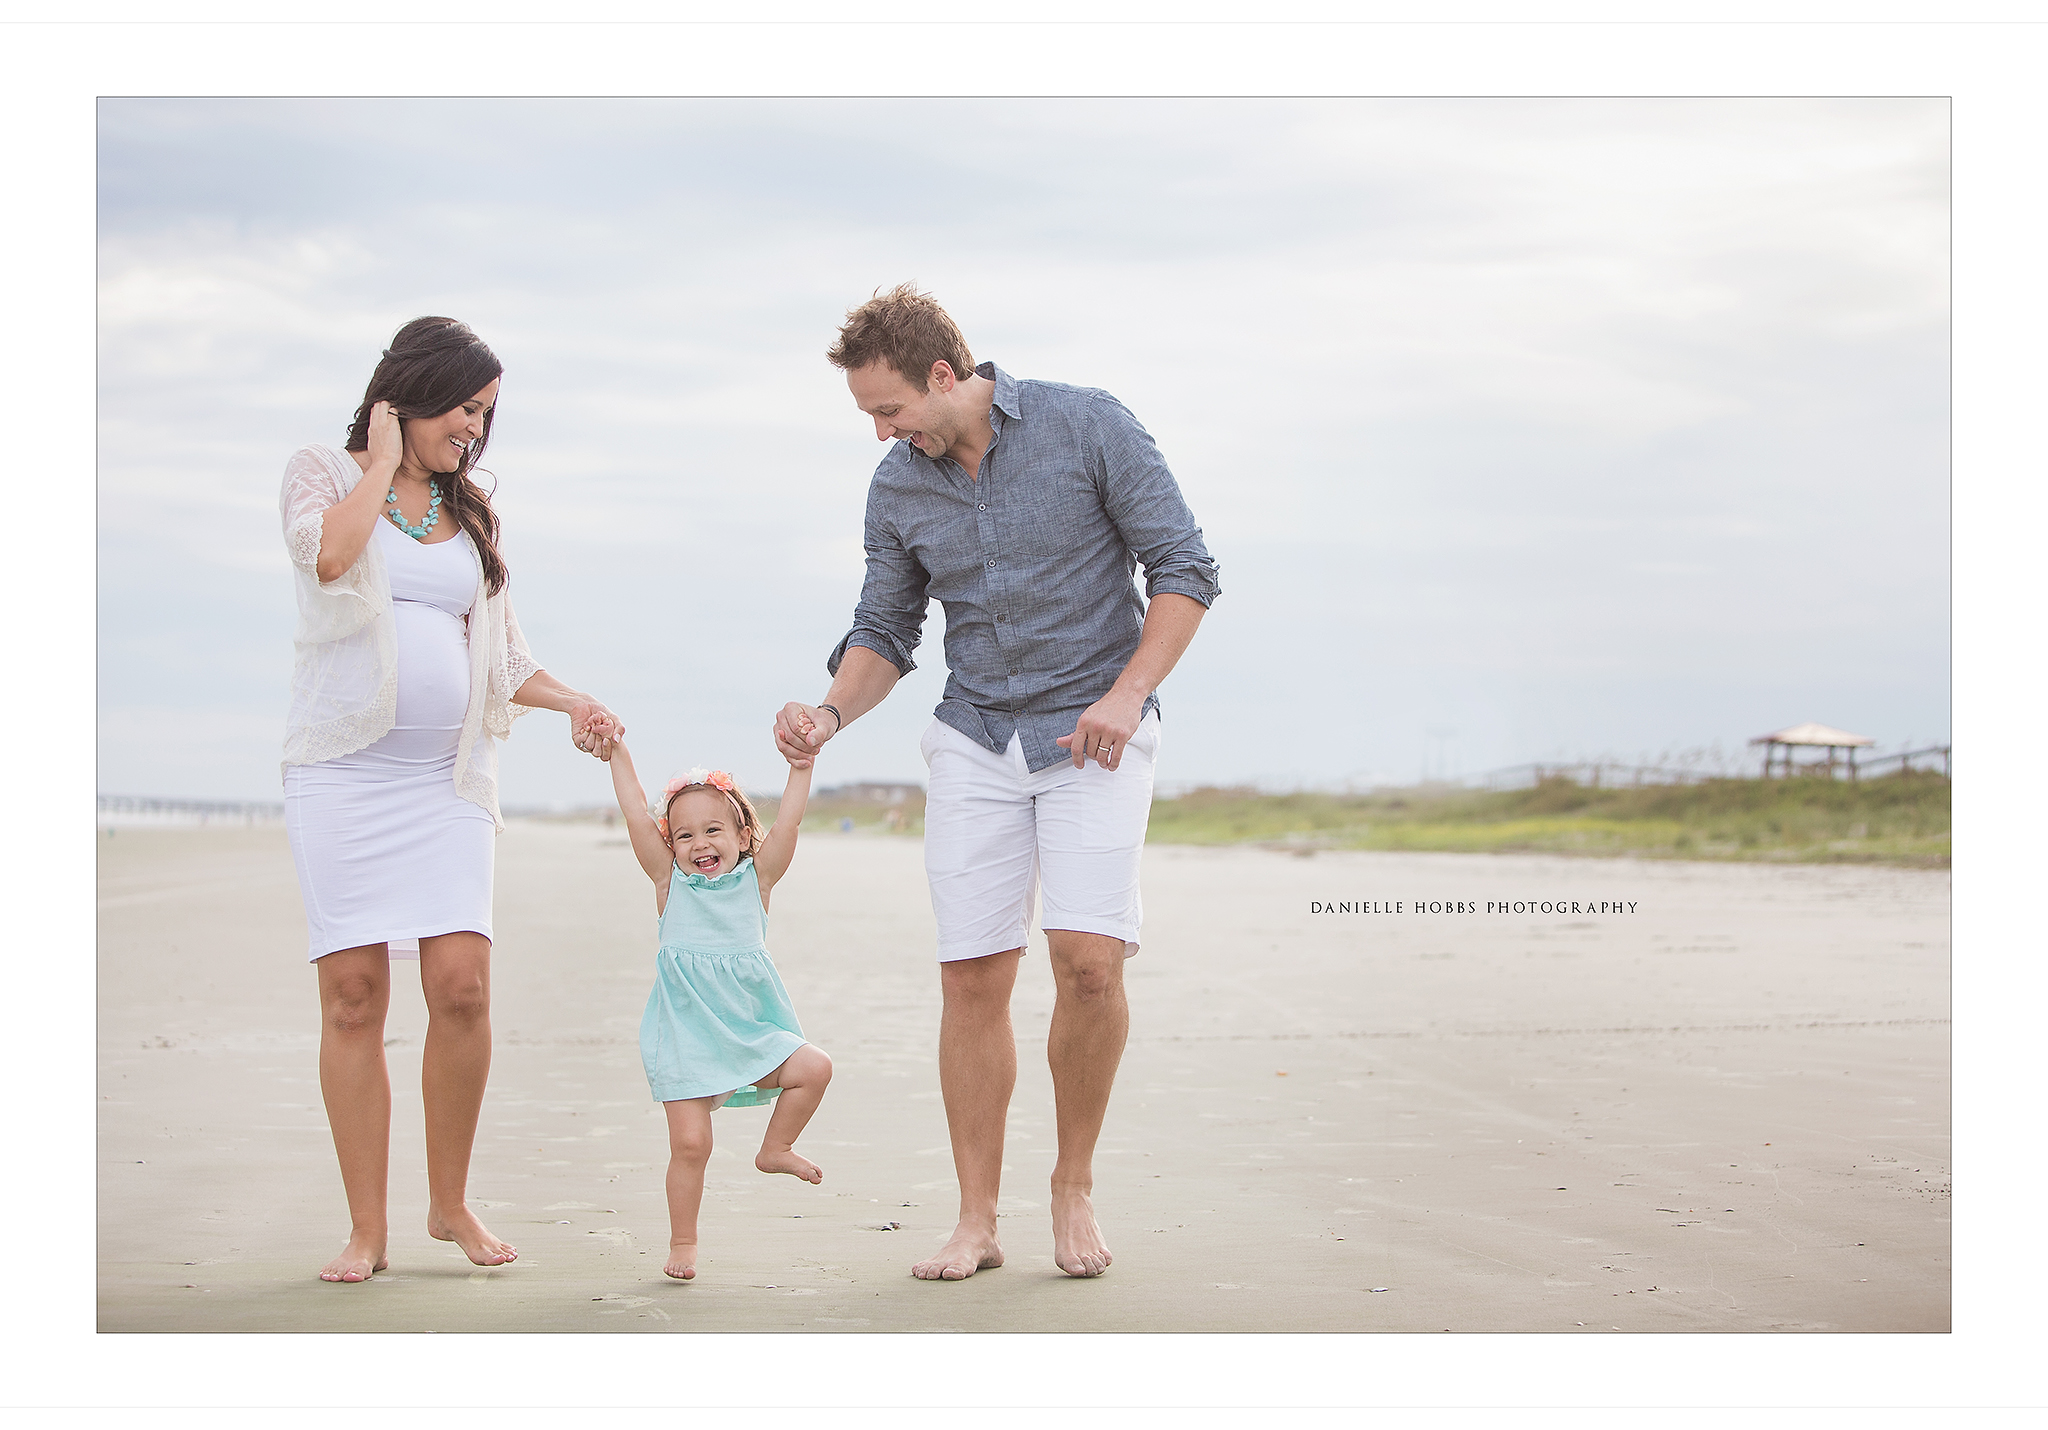 Family maternity session at the beach